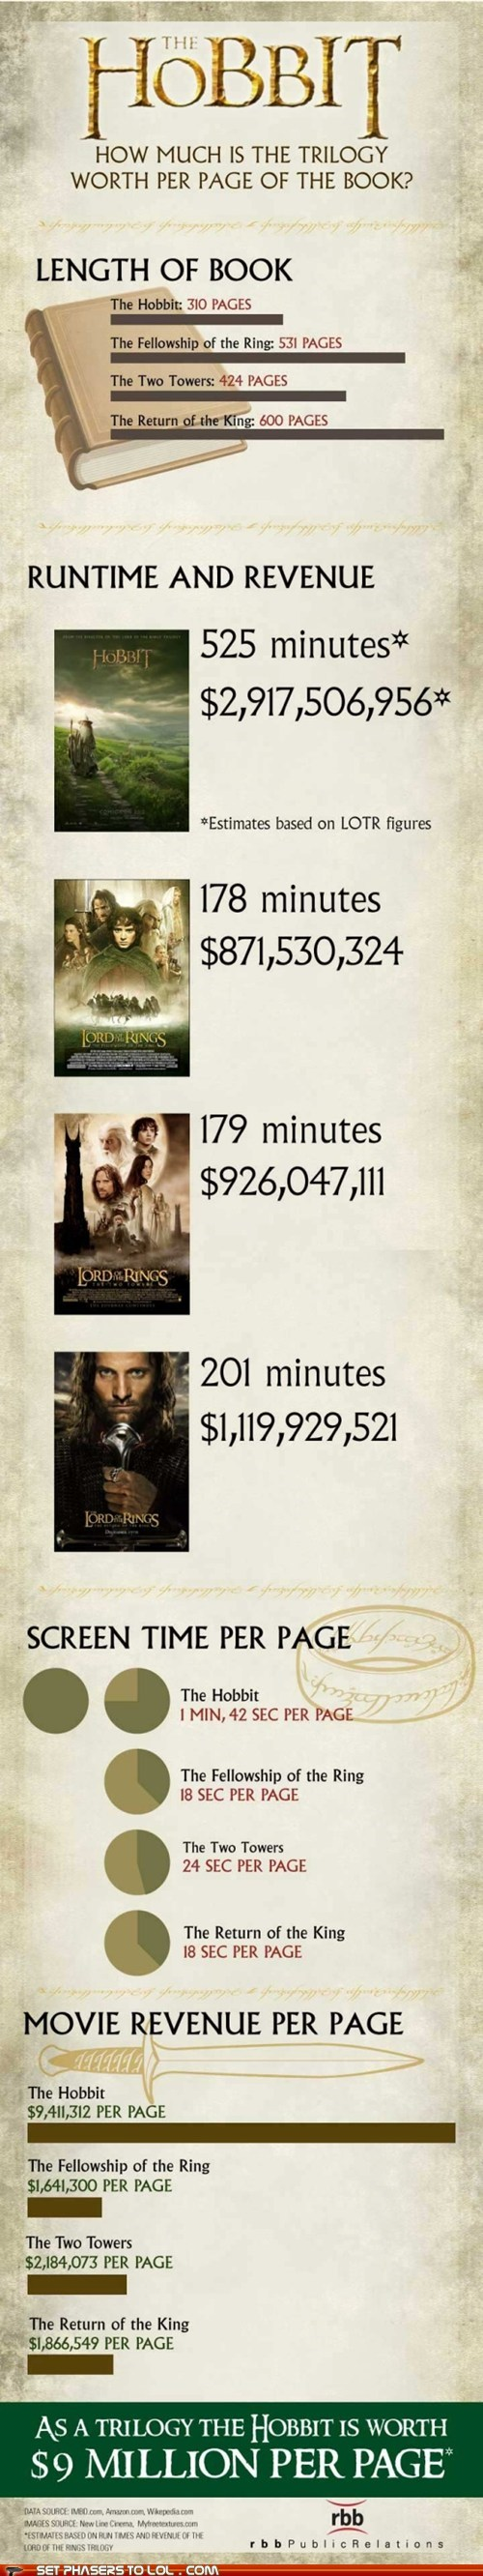 infographic Lord of The Ring Lord of the Rings money movies peter jackson - 6478299136